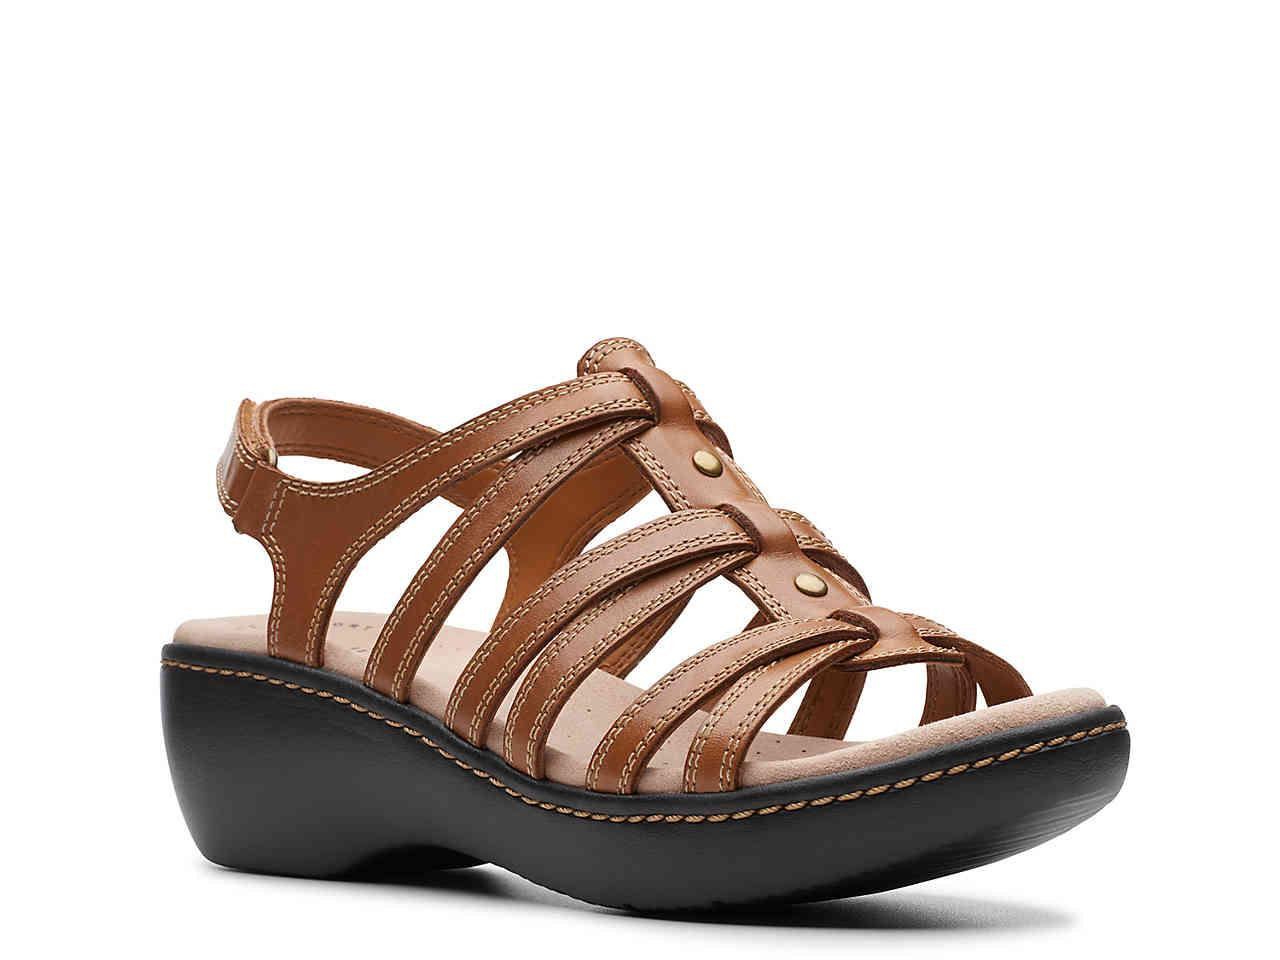 fa63d02c1426 Lyst - Clarks Delana Curve Wedge Sandal in Brown